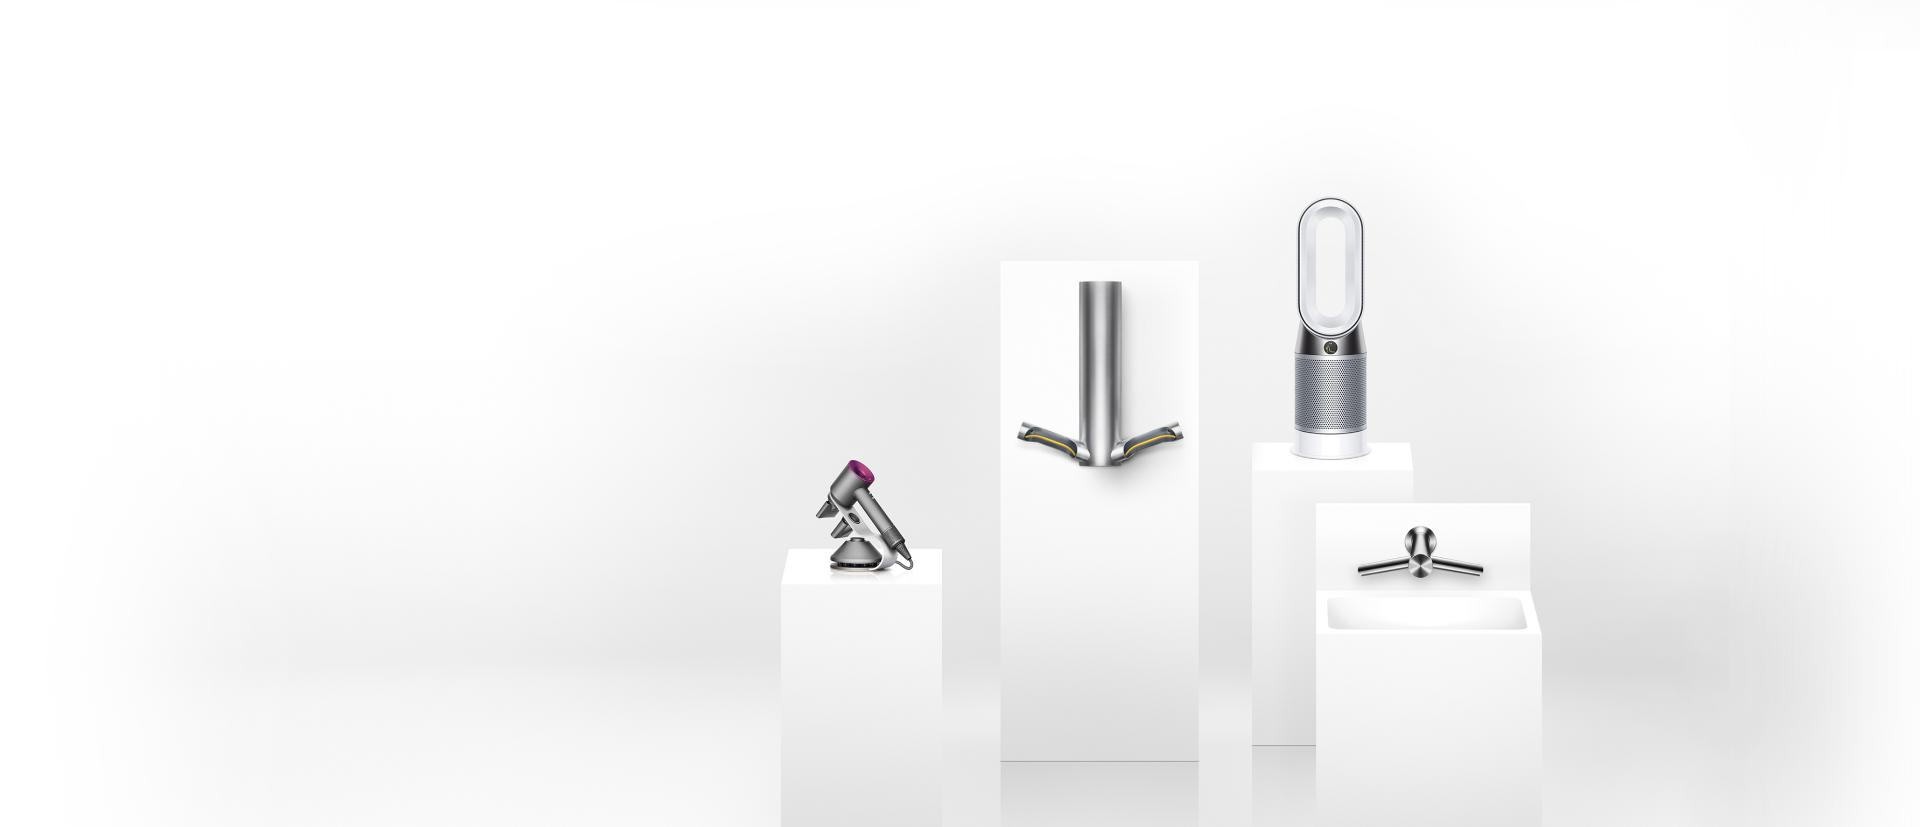 Podium of Dyson products beneath Cu-Beam light